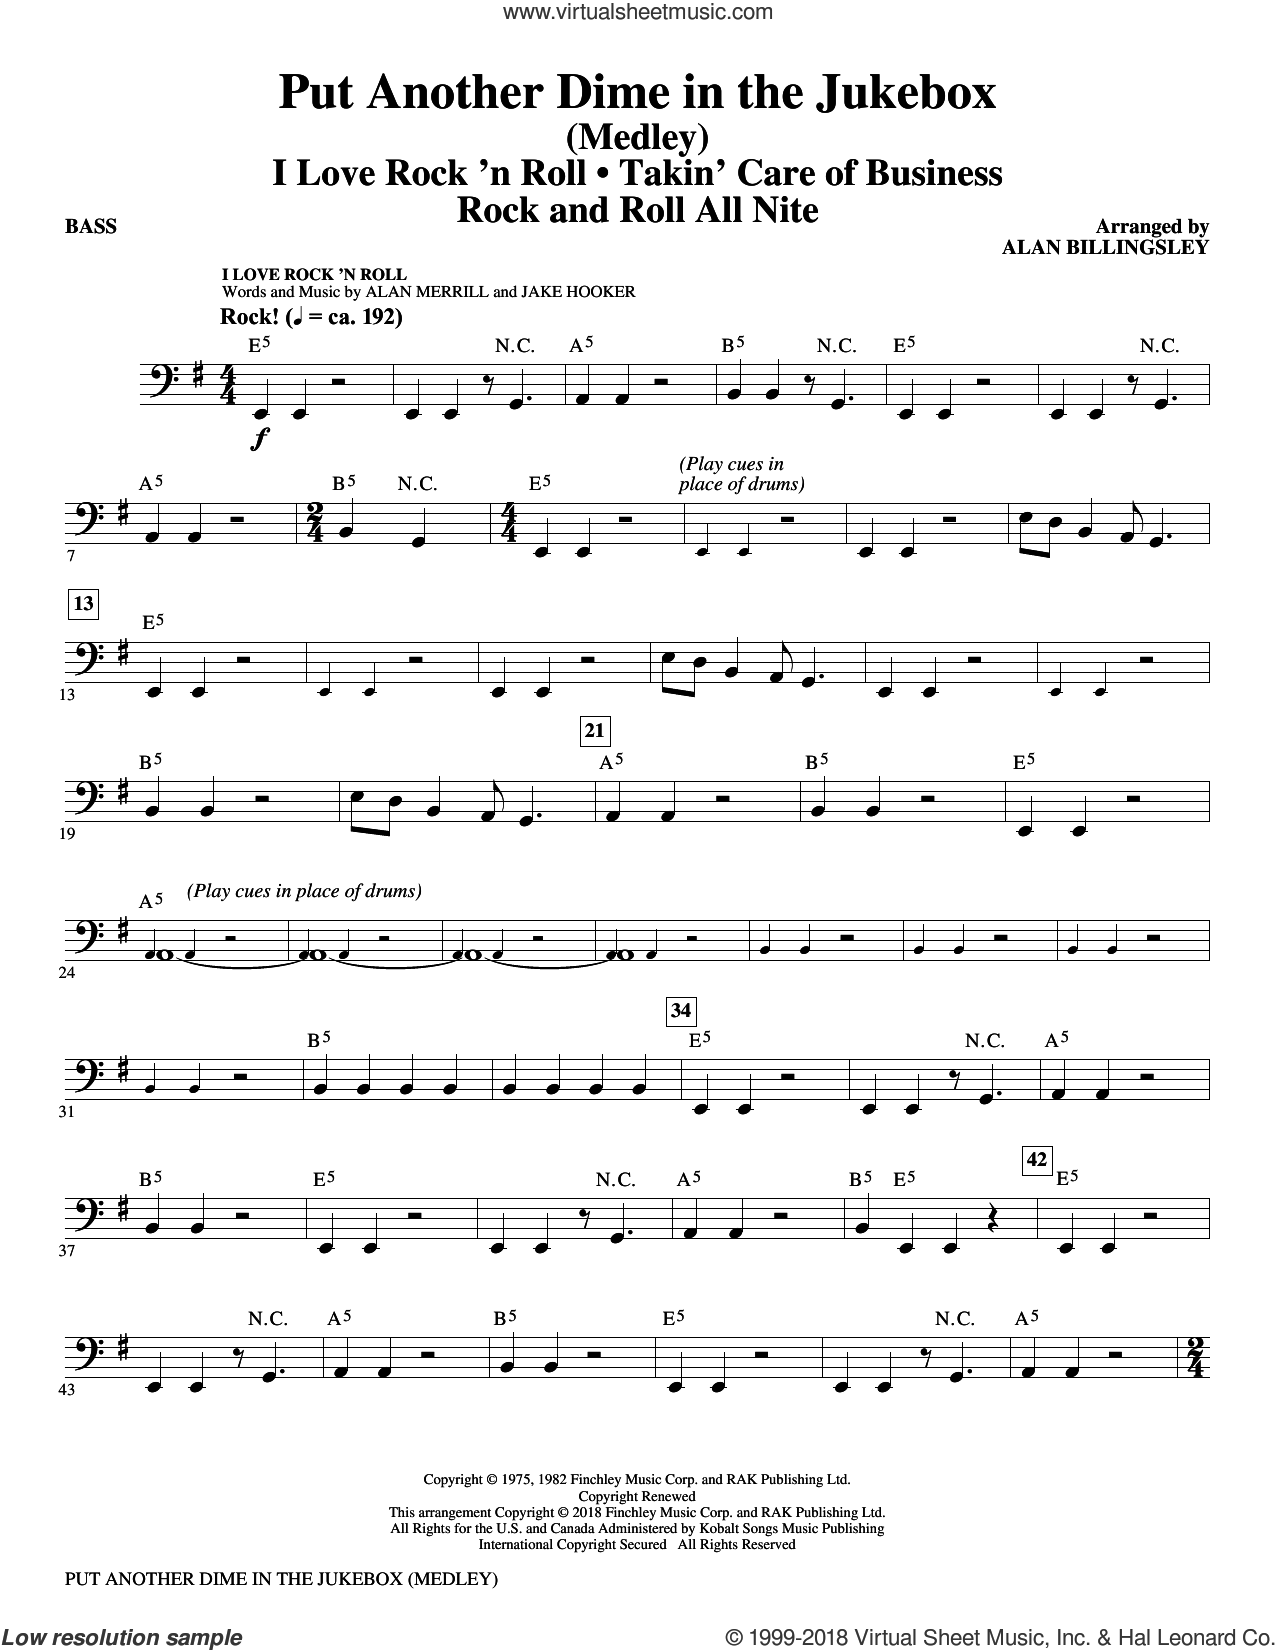 Put Another Dime In The Jukebox (Medley) sheet music for orchestra/band (bass) by Alan Billingsley, Alan Merrill and Jake Hooker, intermediate skill level